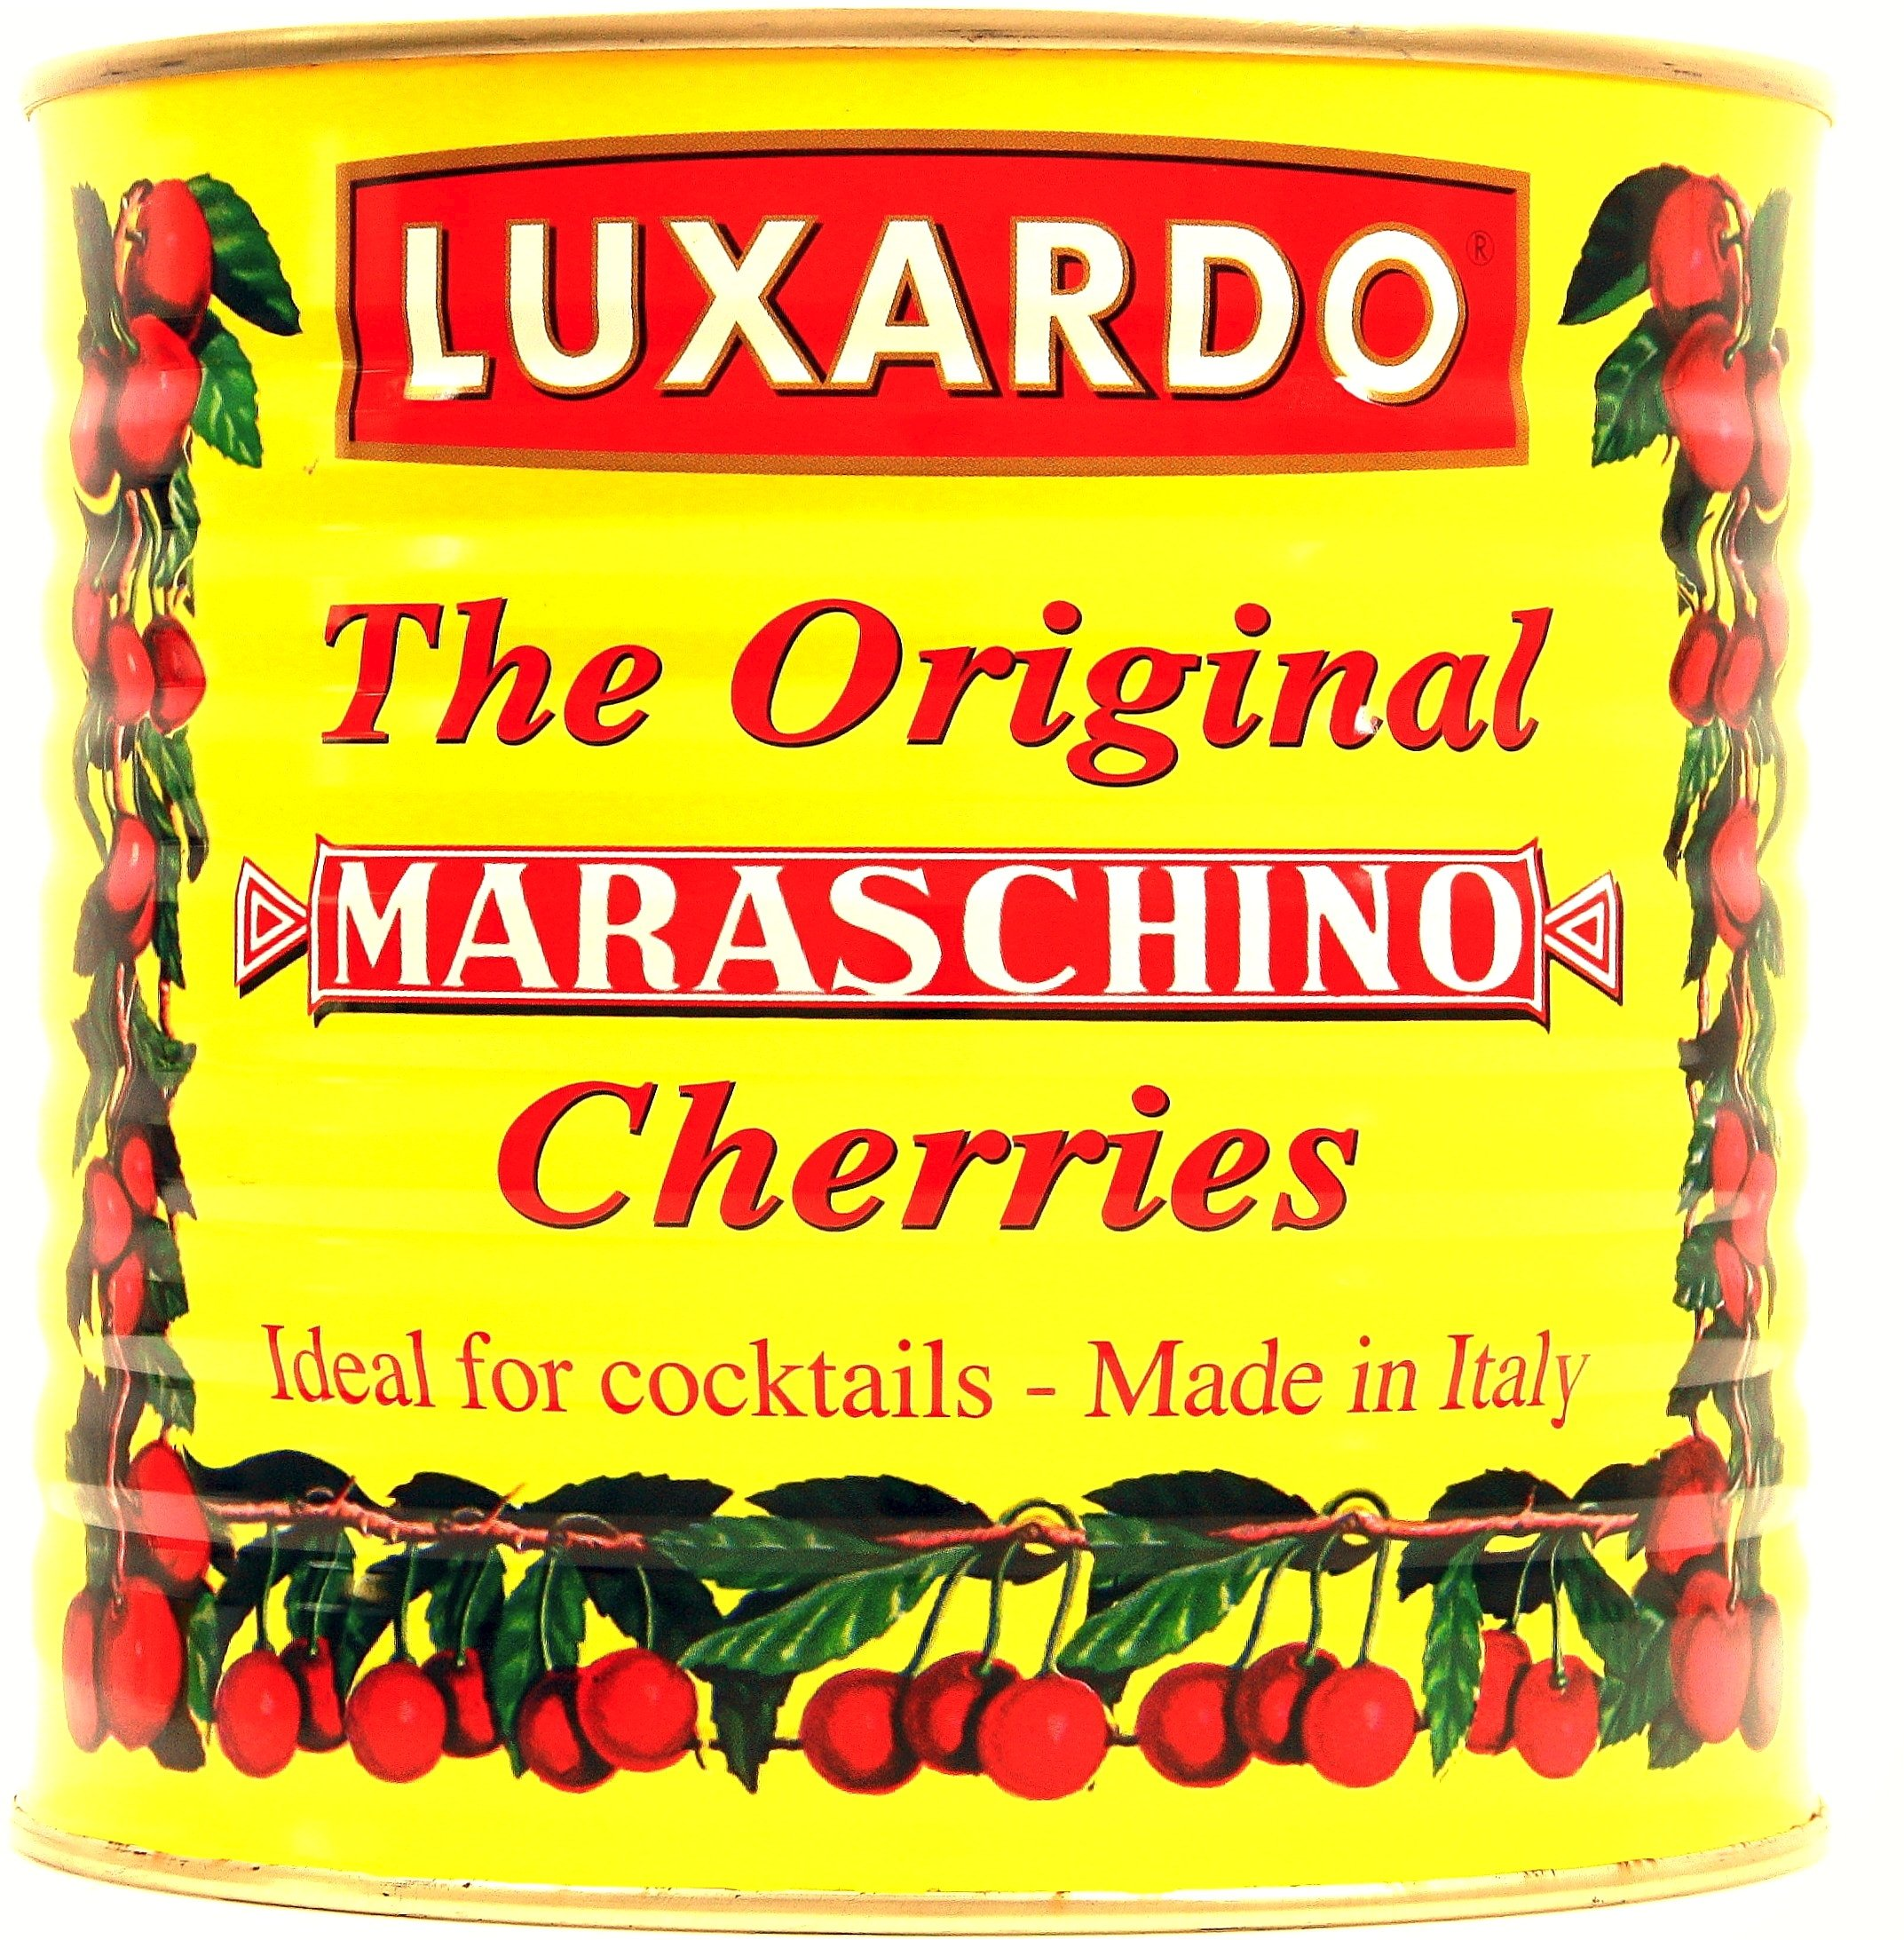 LUXARDO The Original Maraschino Cherries - 105.8 oz